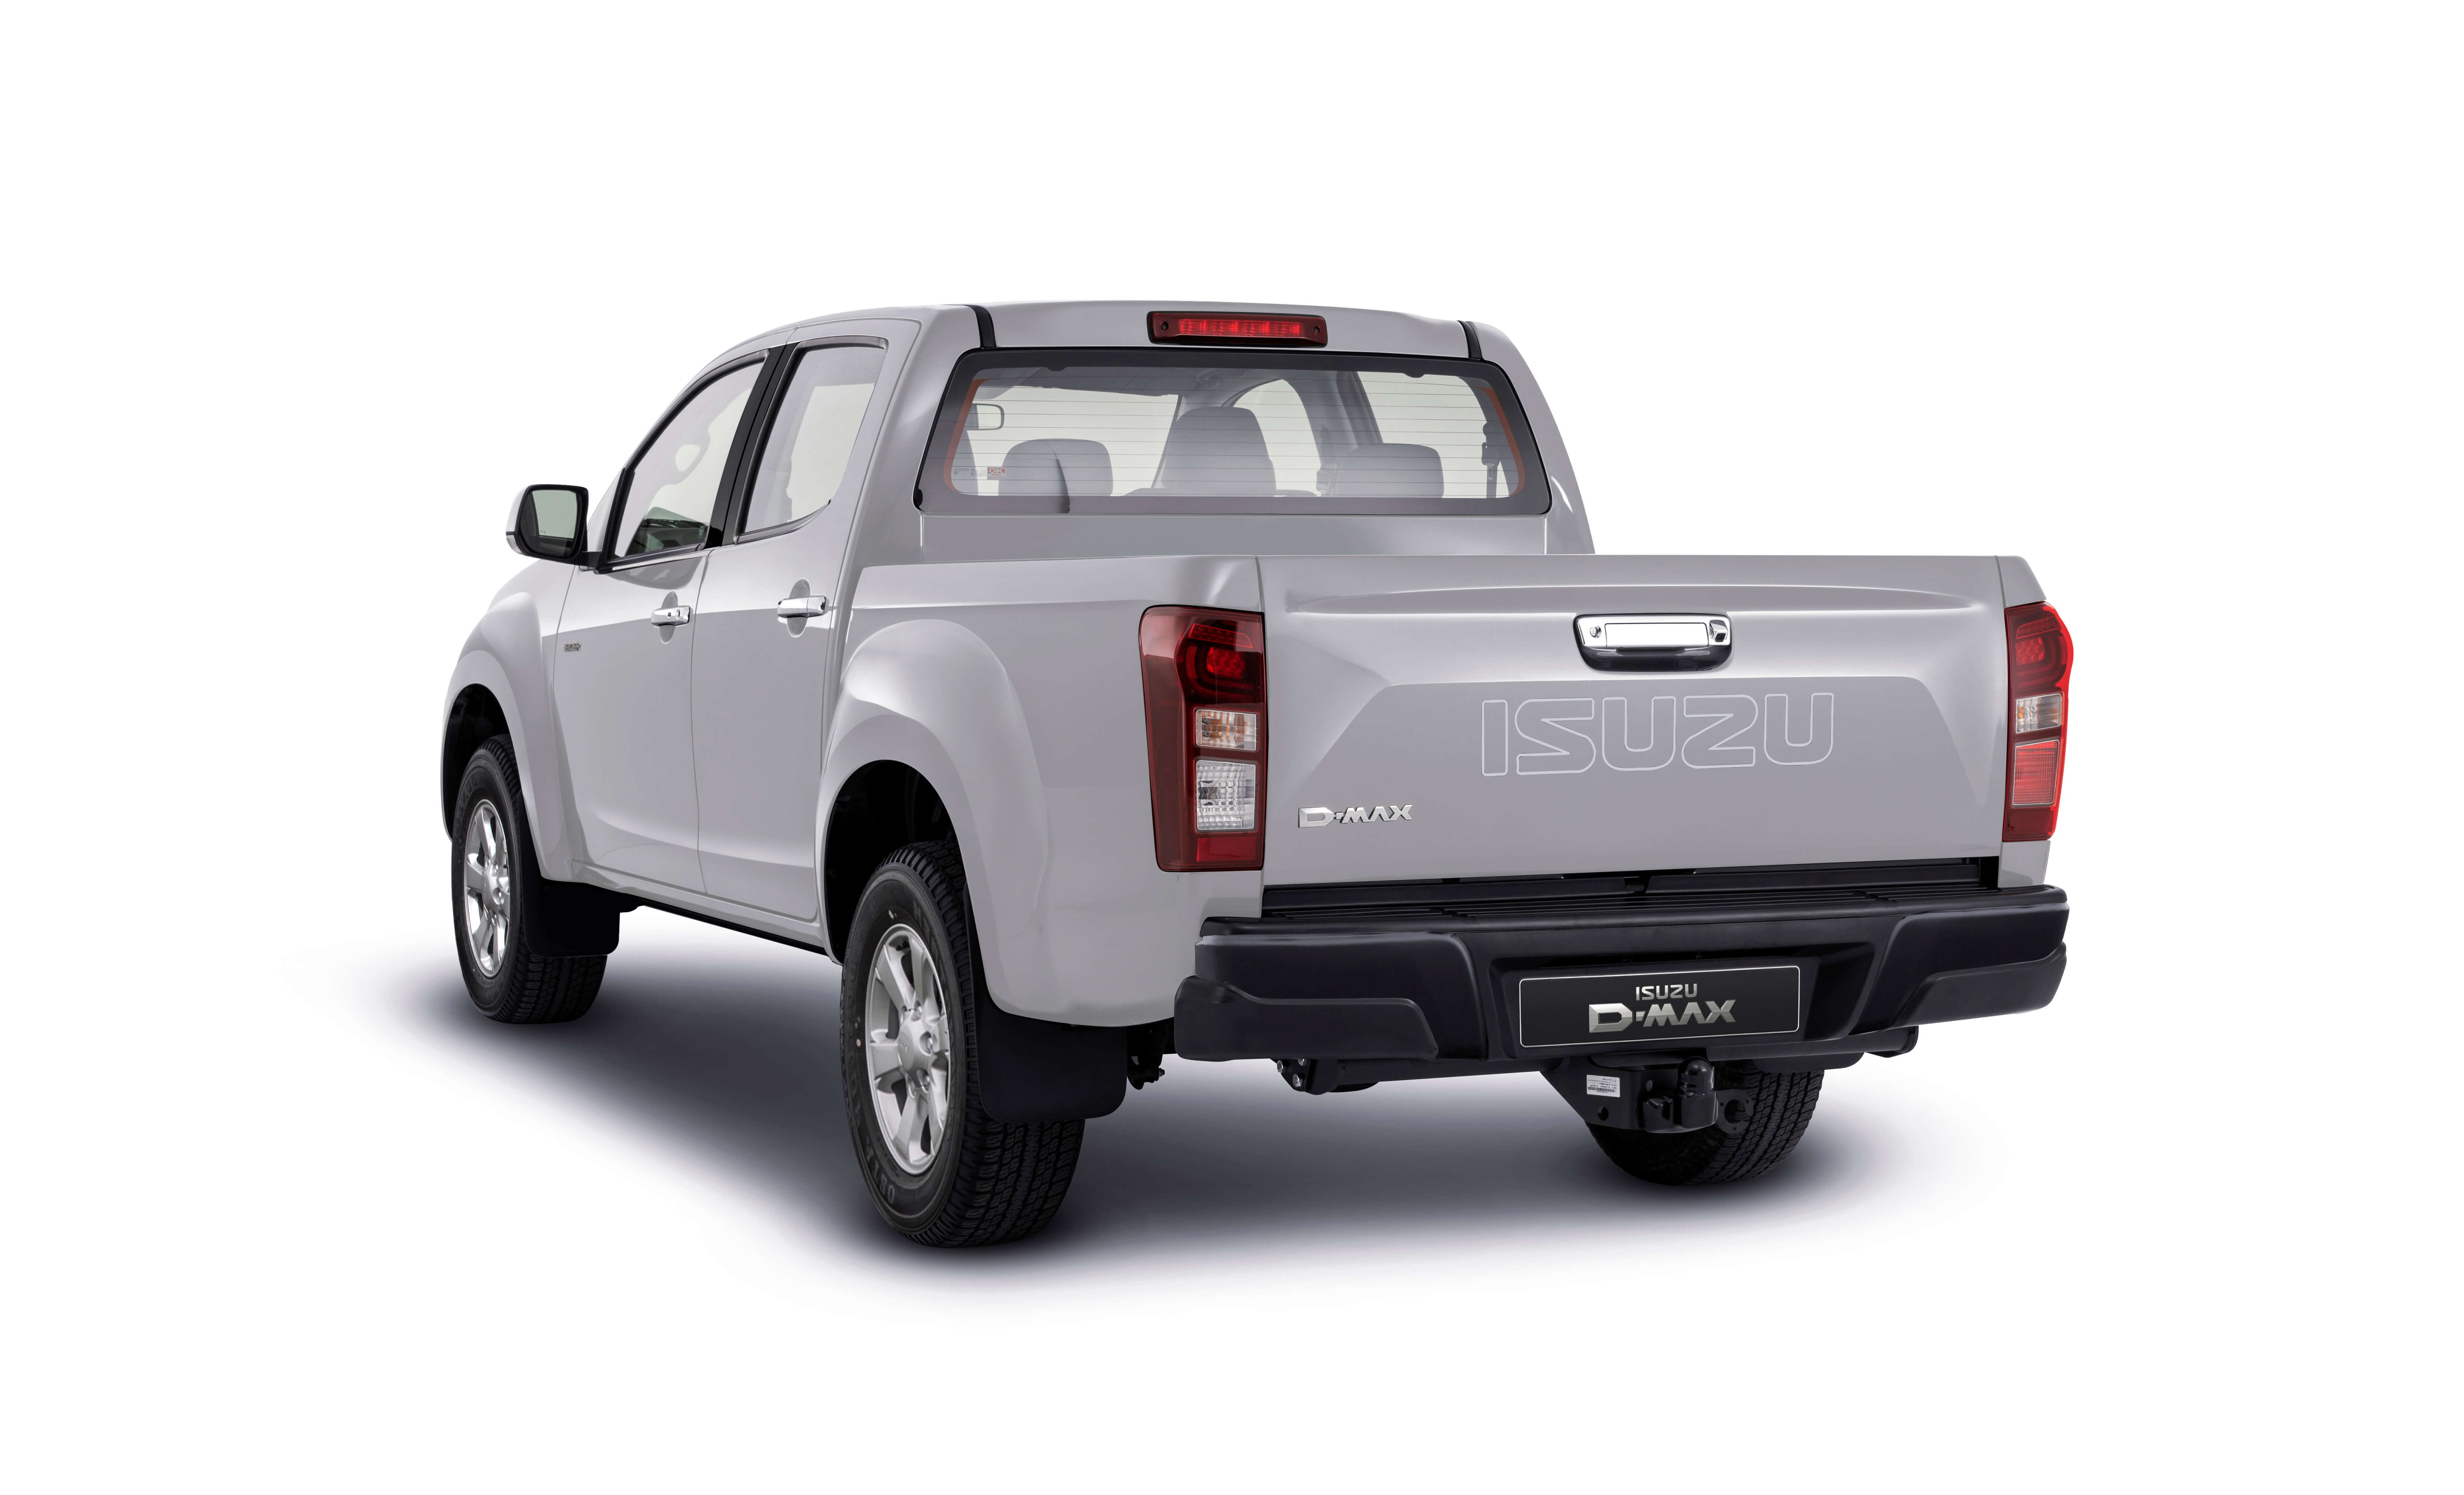 Isuzu D-Max Eiger rear view in white